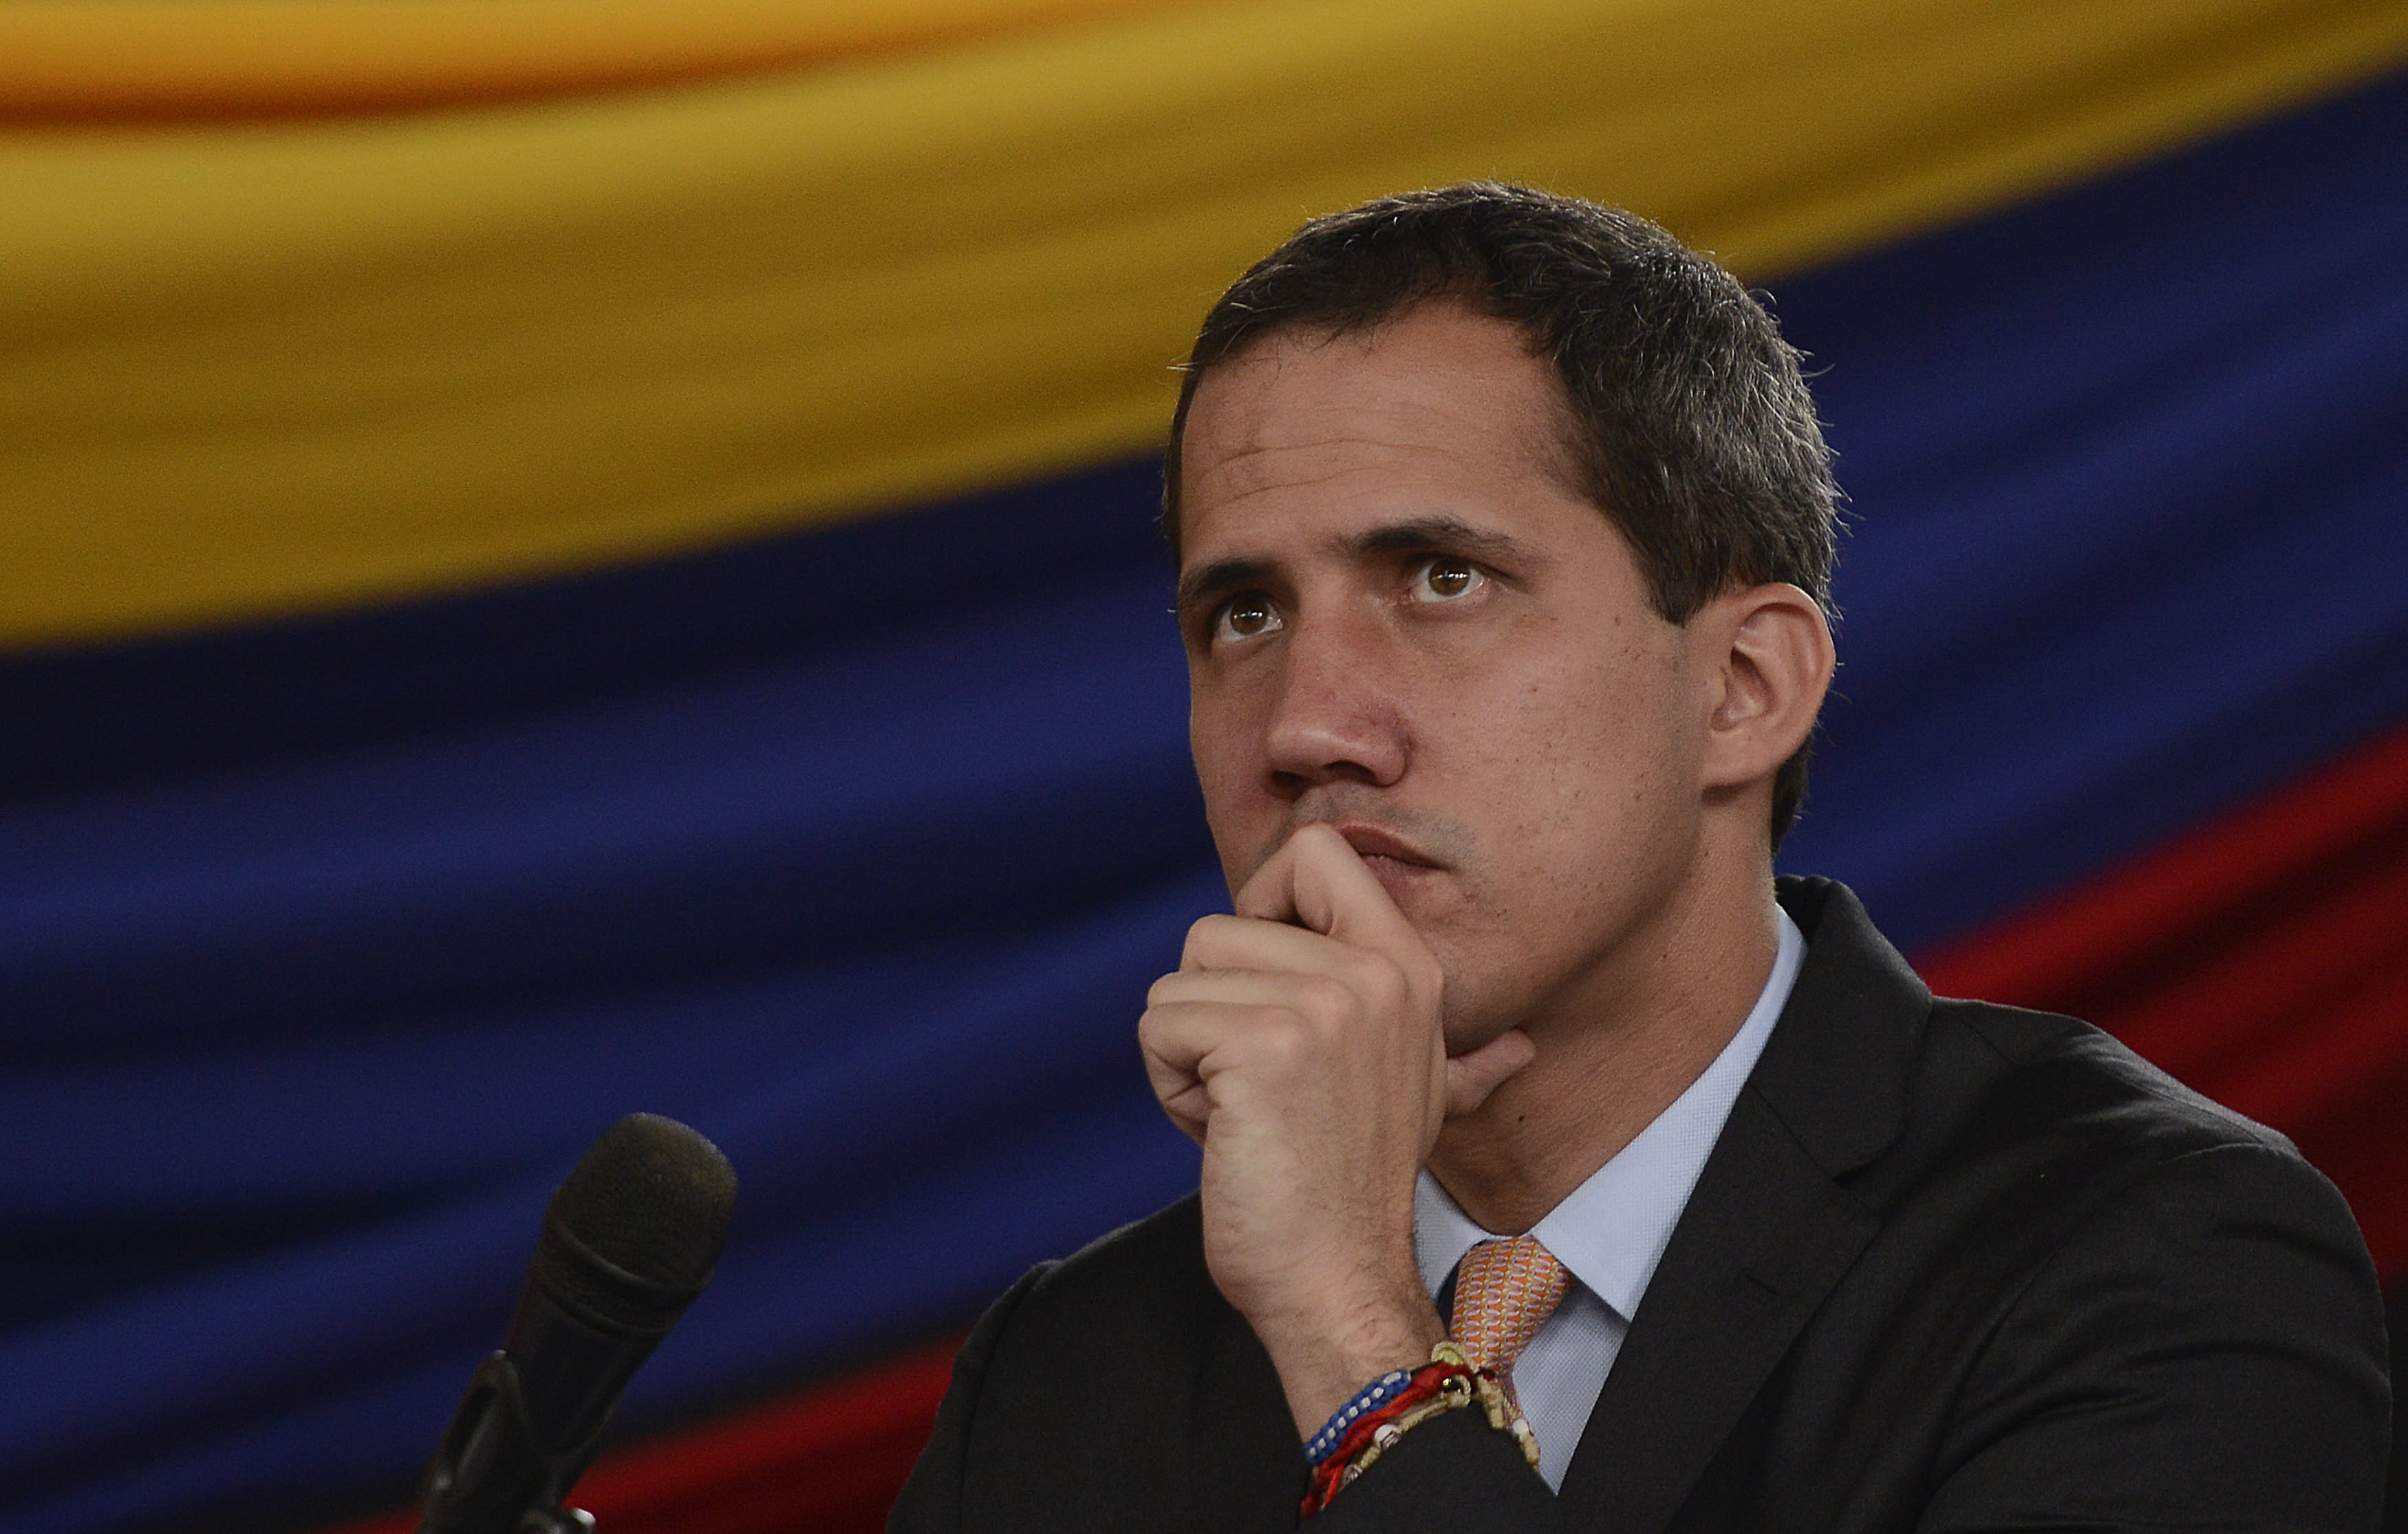 Opposition leader Juan Guaido holds a session at a theater in the El Hatillo neighborhood after opposition lawmakers' vehicles were attacked by government supporters while driving to the National Assembly in downtown Caracas, Venezuela, Wednesday, Jan. 15, 2020. It's the second time this month that lawmakers have been barred from from the building that houses the only branch of government out of control of President Nicolas Maduro's government. (AP Photo/Matias Delacroix)